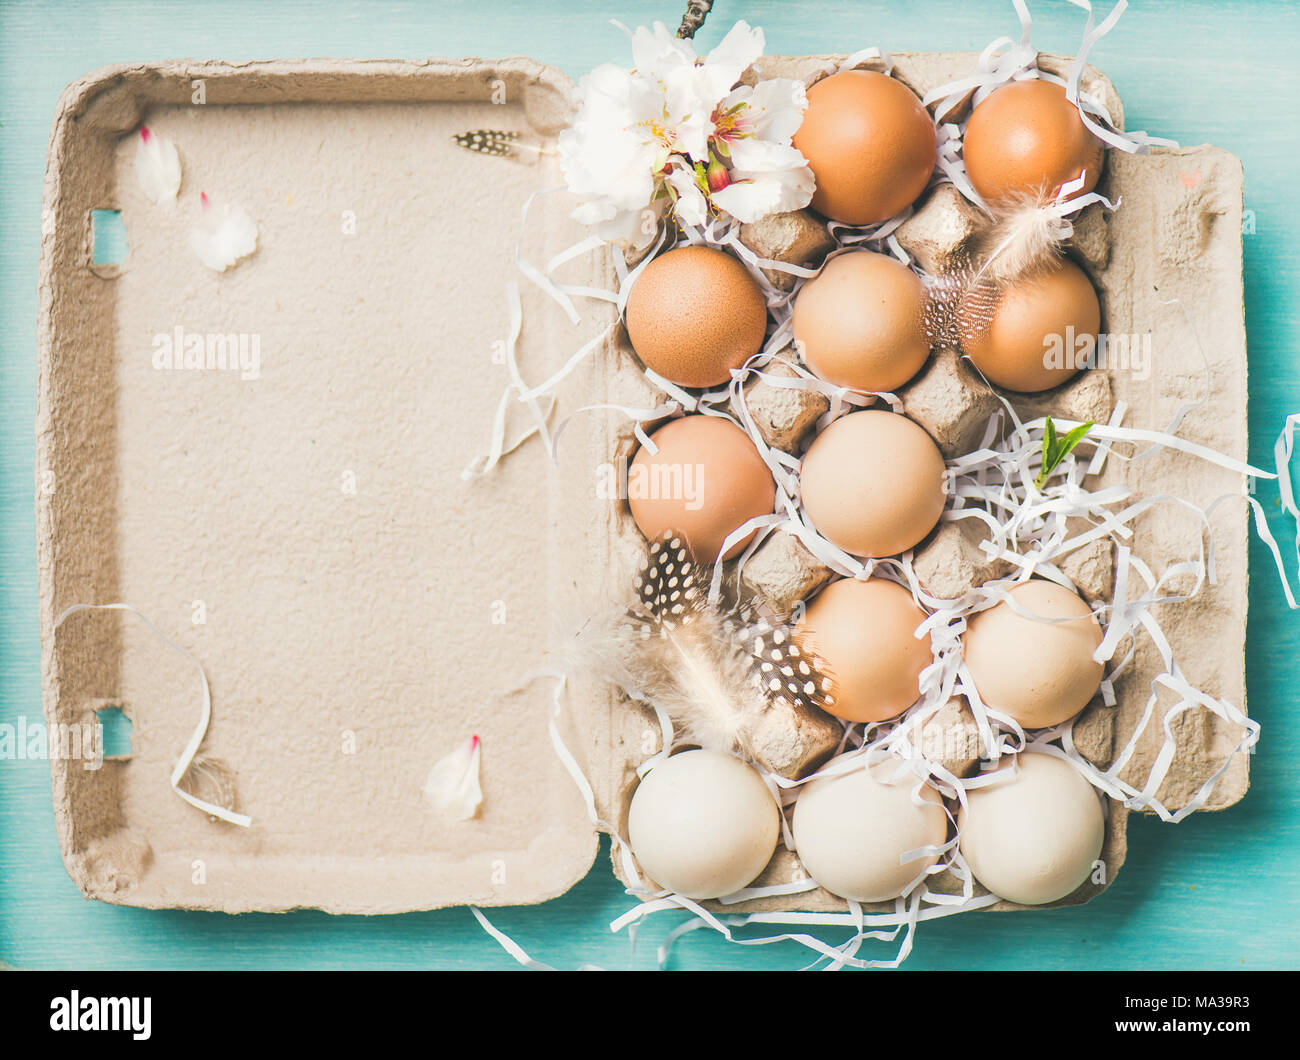 Natural colored eggs for Easter in box, blue background - Stock Image